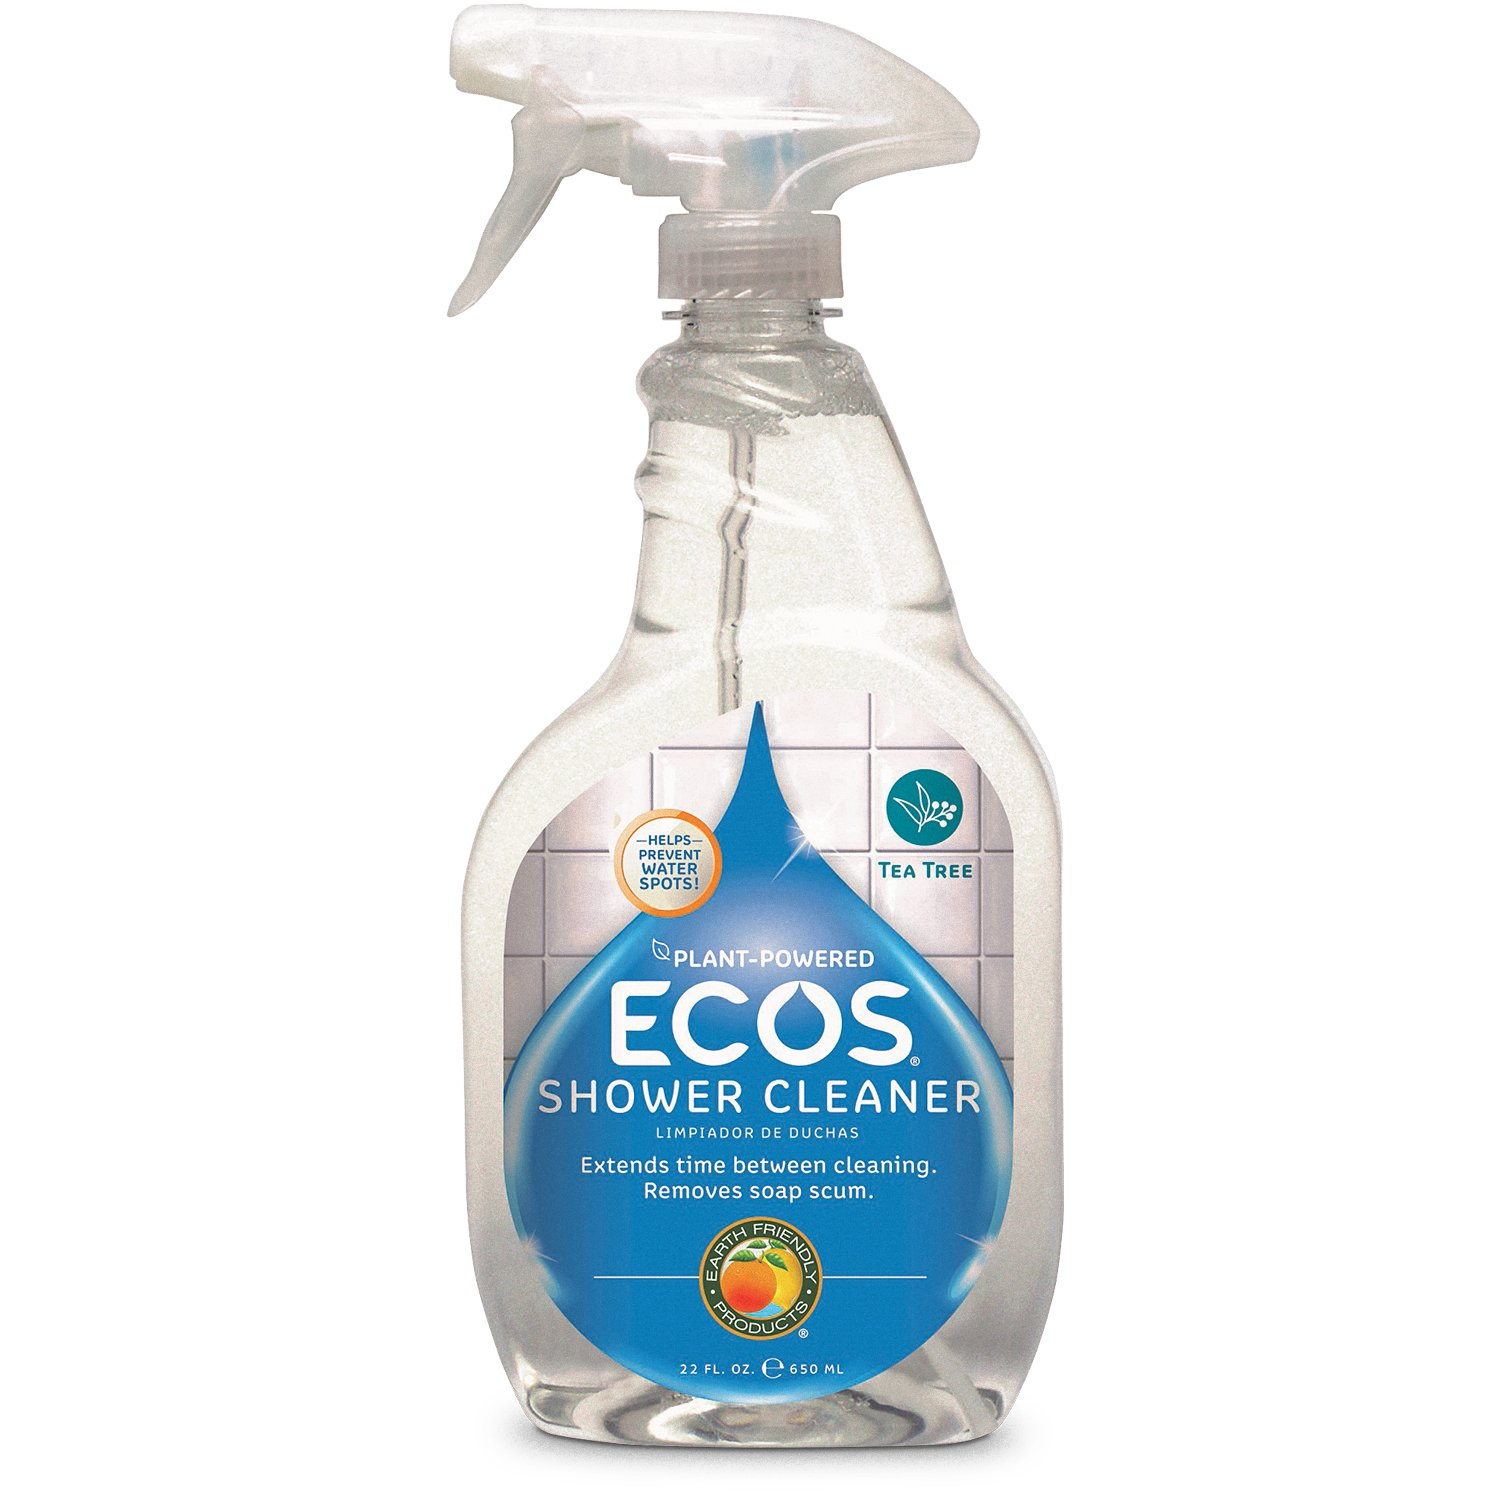 Earth Friendly Products ECOS Shower Cleaner with Tea Tree Oil, 22-Ounce (Pack of 2) by Earth Friendly Products